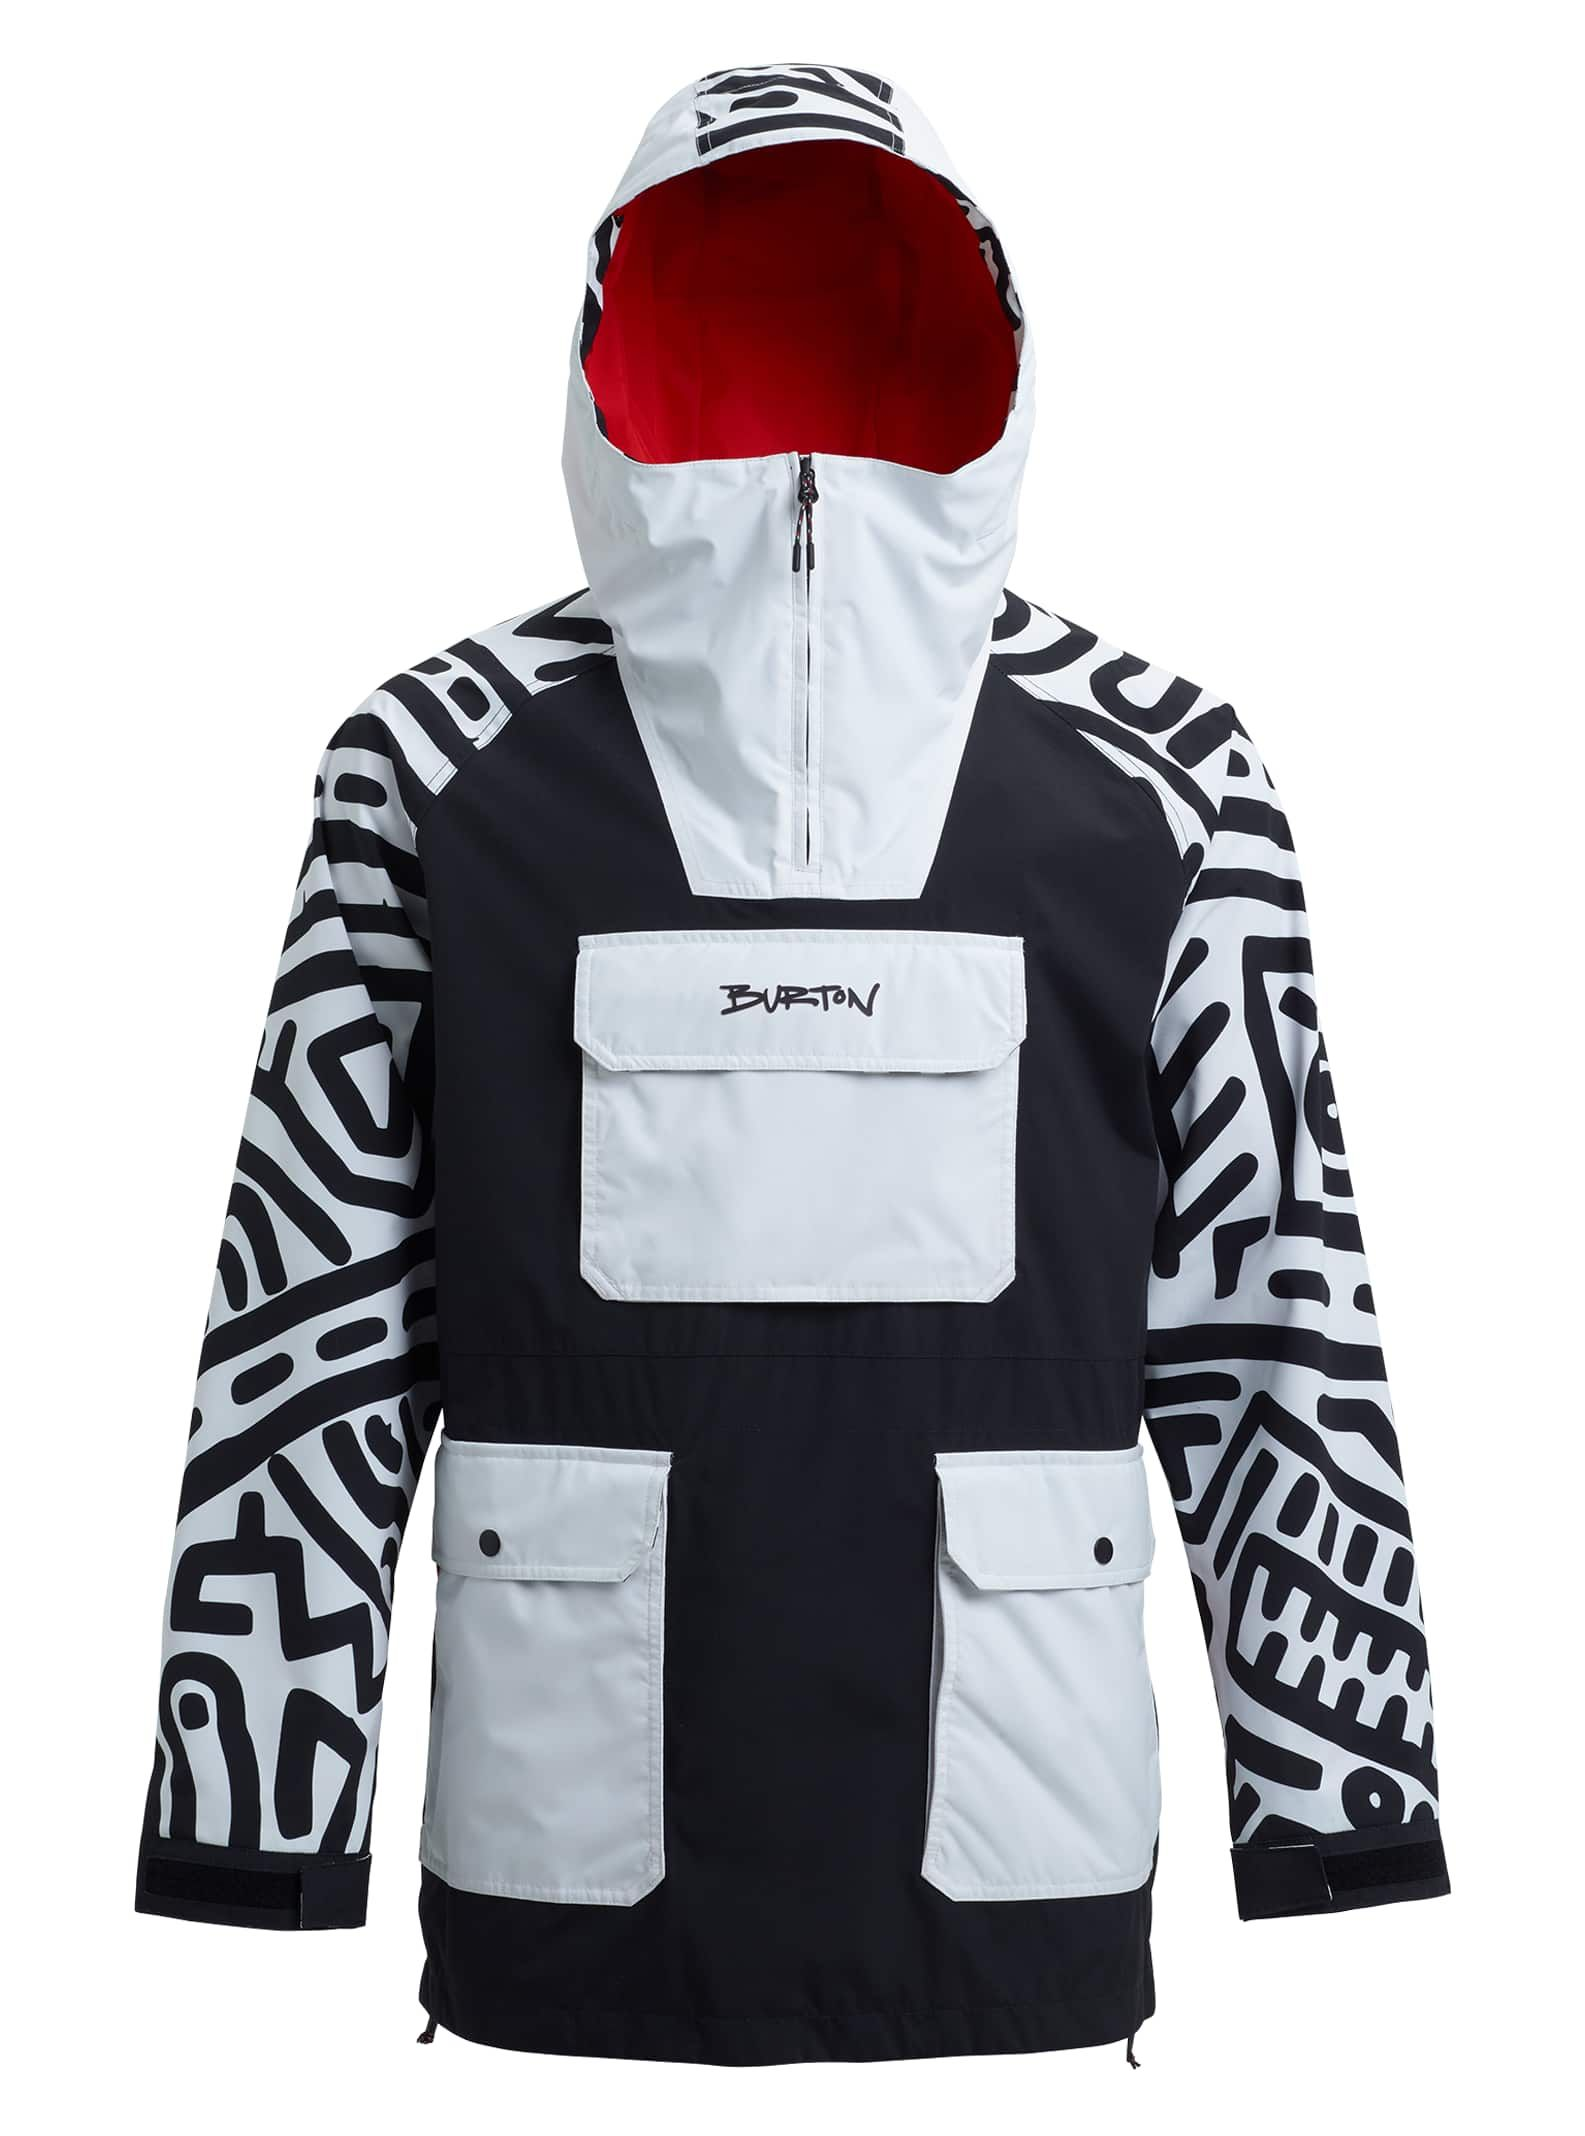 e3c56c63e Men's Keith Haring x Burton Anorak Jacket | Products in 2019 ...